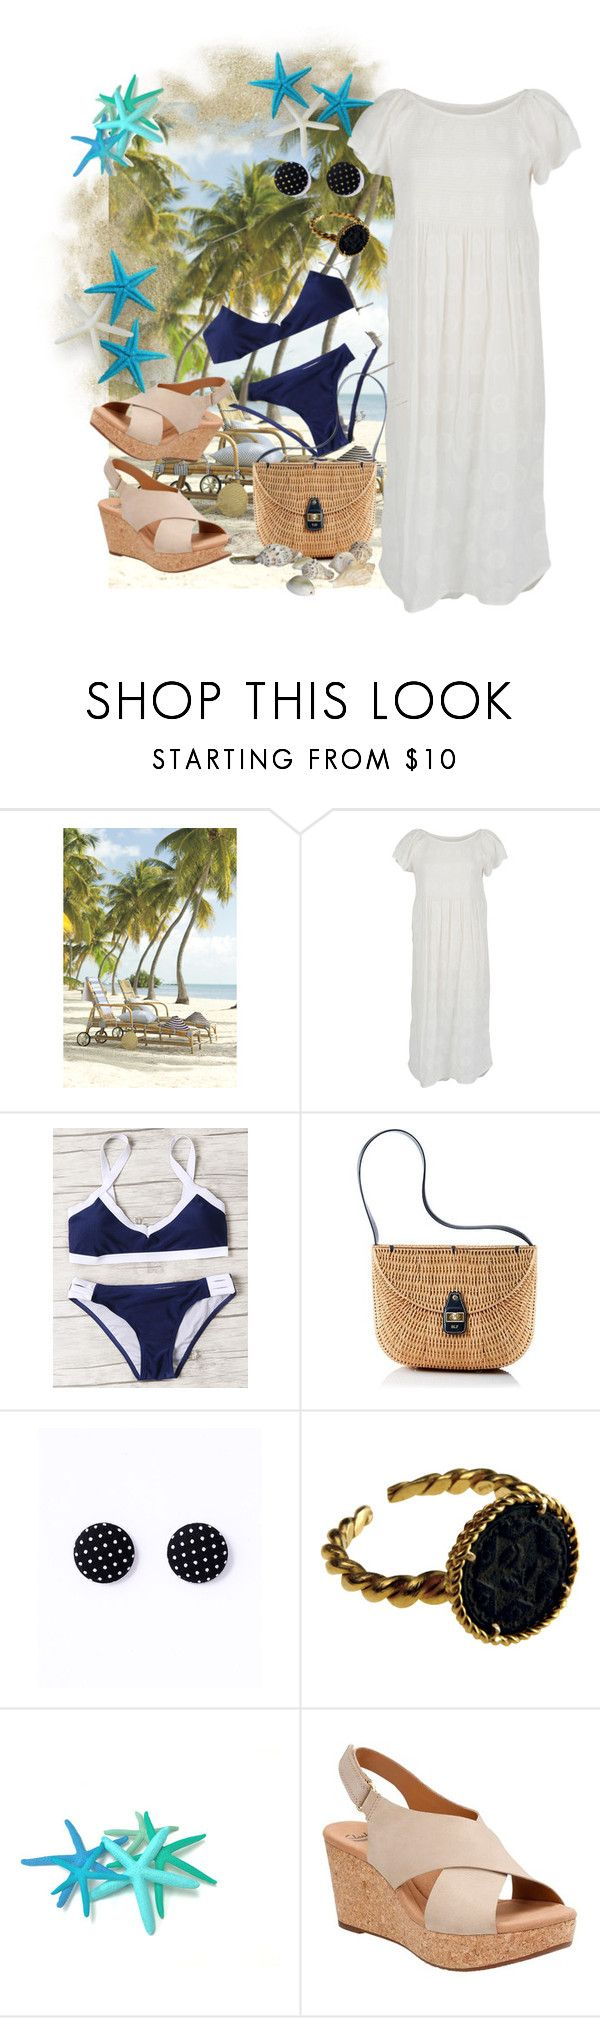 """navy at the beach"" by jubee22 ❤ liked on Polyvore featuring Velvet by Graham & Spencer, Mark & Graham and Clarks"